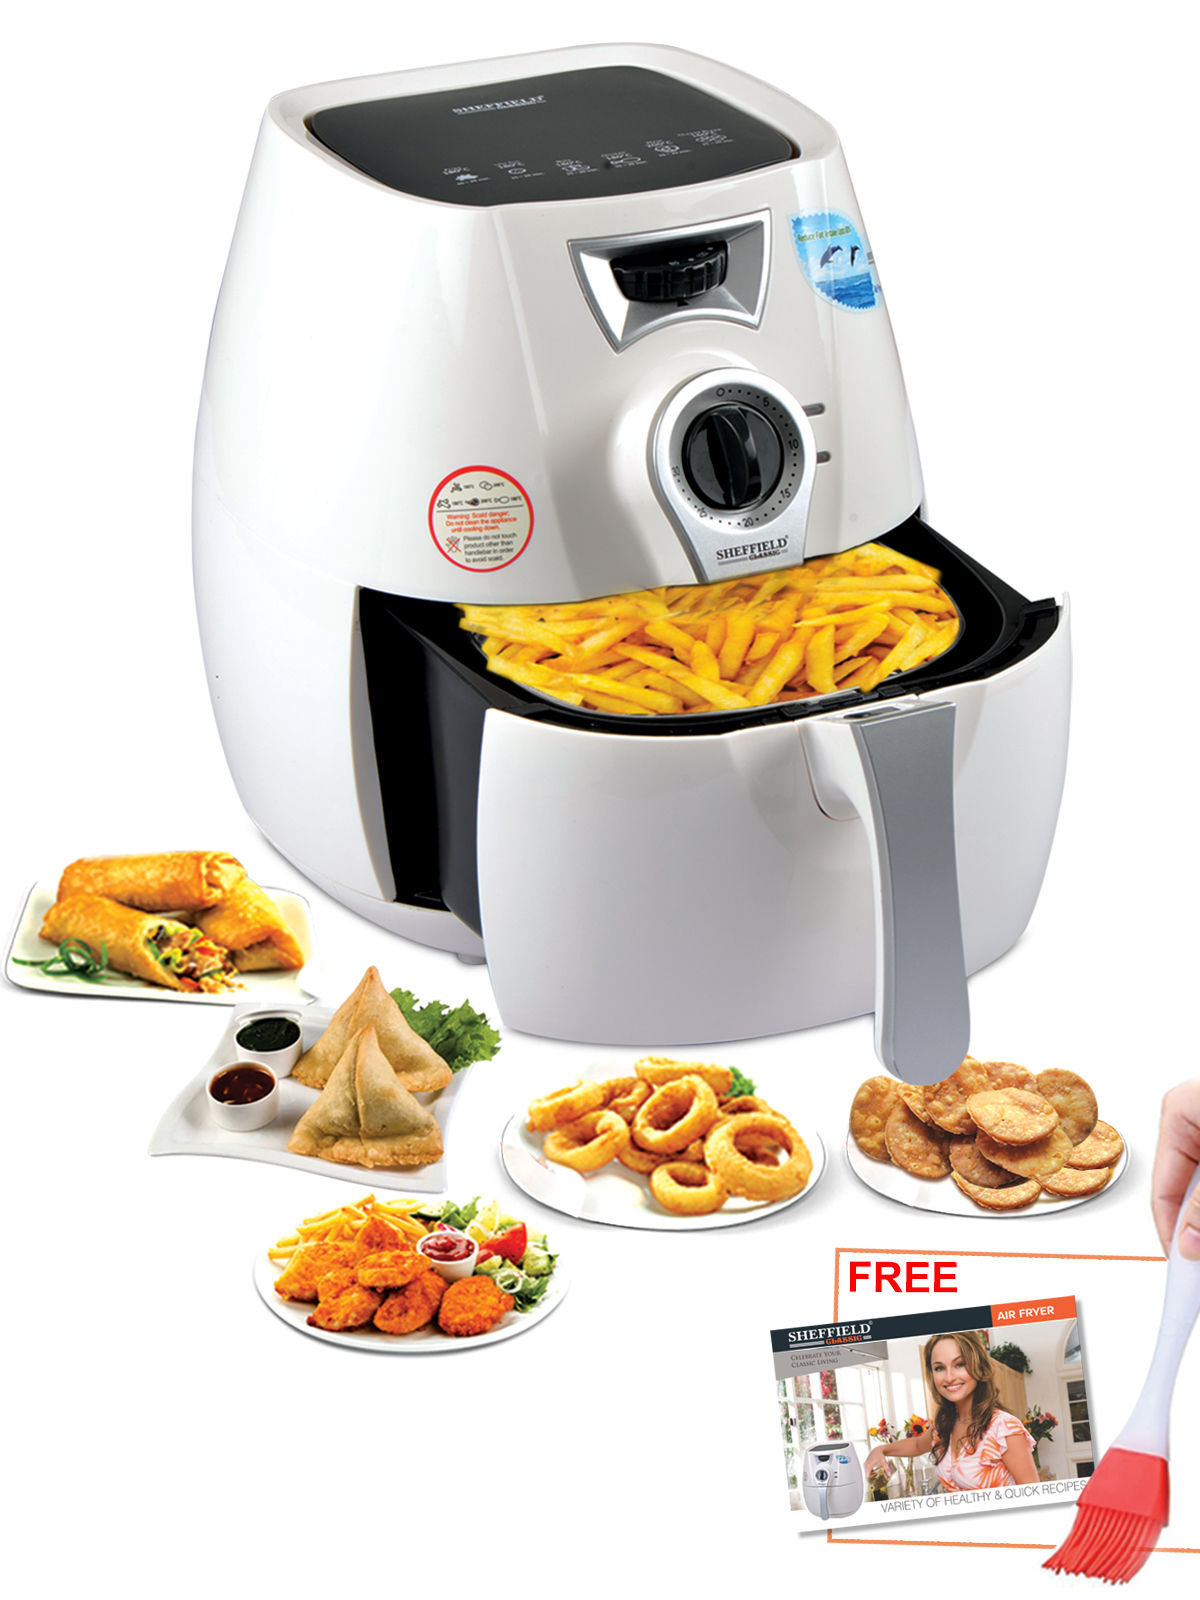 Buy Sheffield Pro Health Air Fryer Online At Best Price In India On